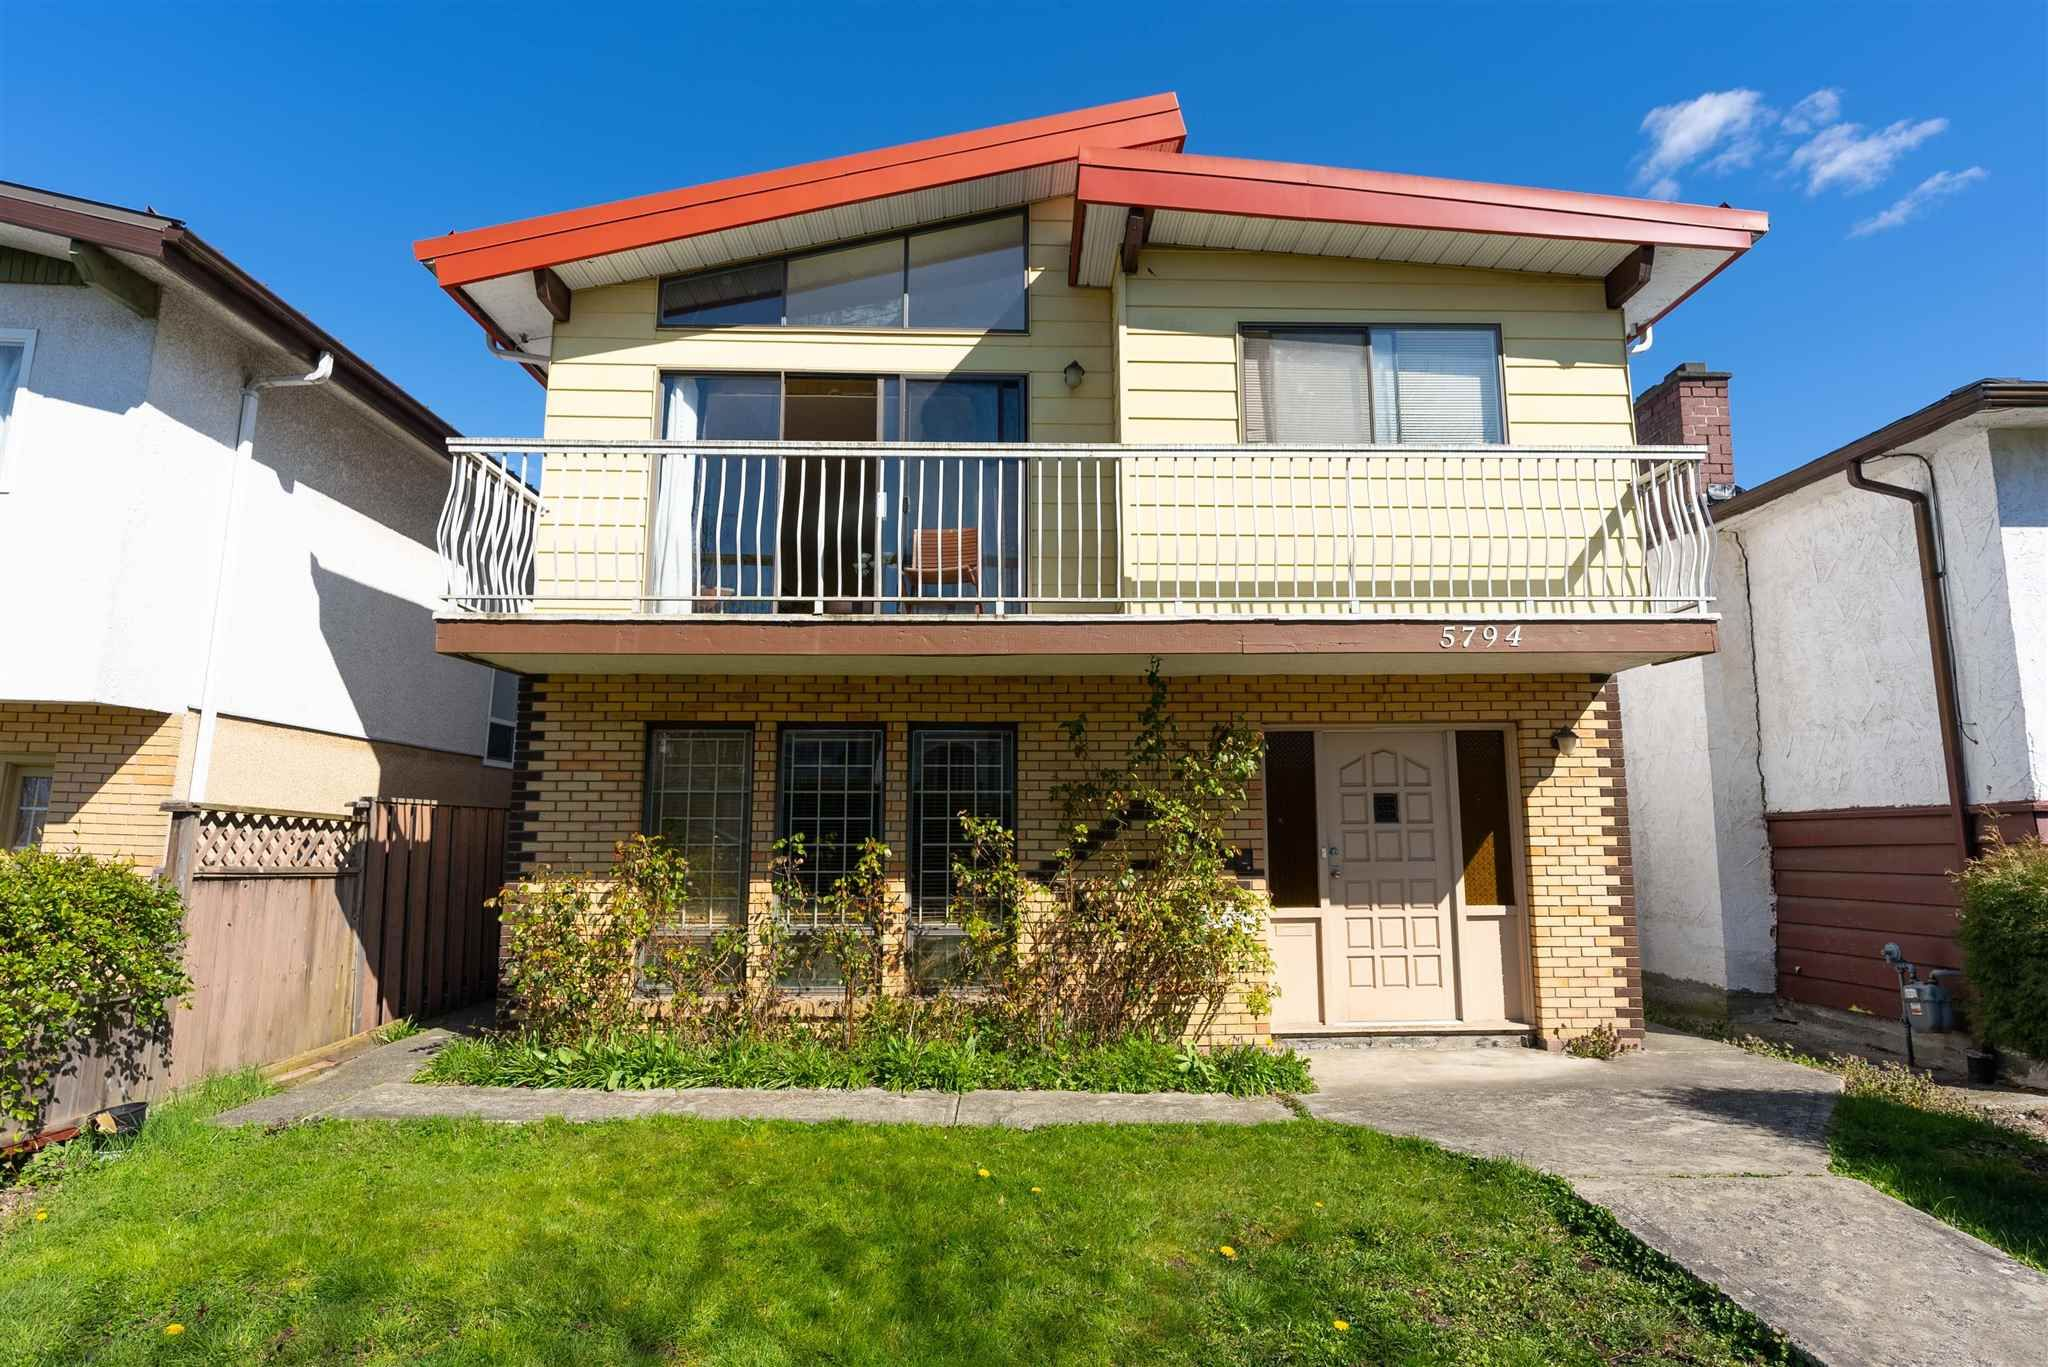 Main Photo: 5794 LANARK Street in Vancouver: Knight House for sale (Vancouver East)  : MLS®# R2601855